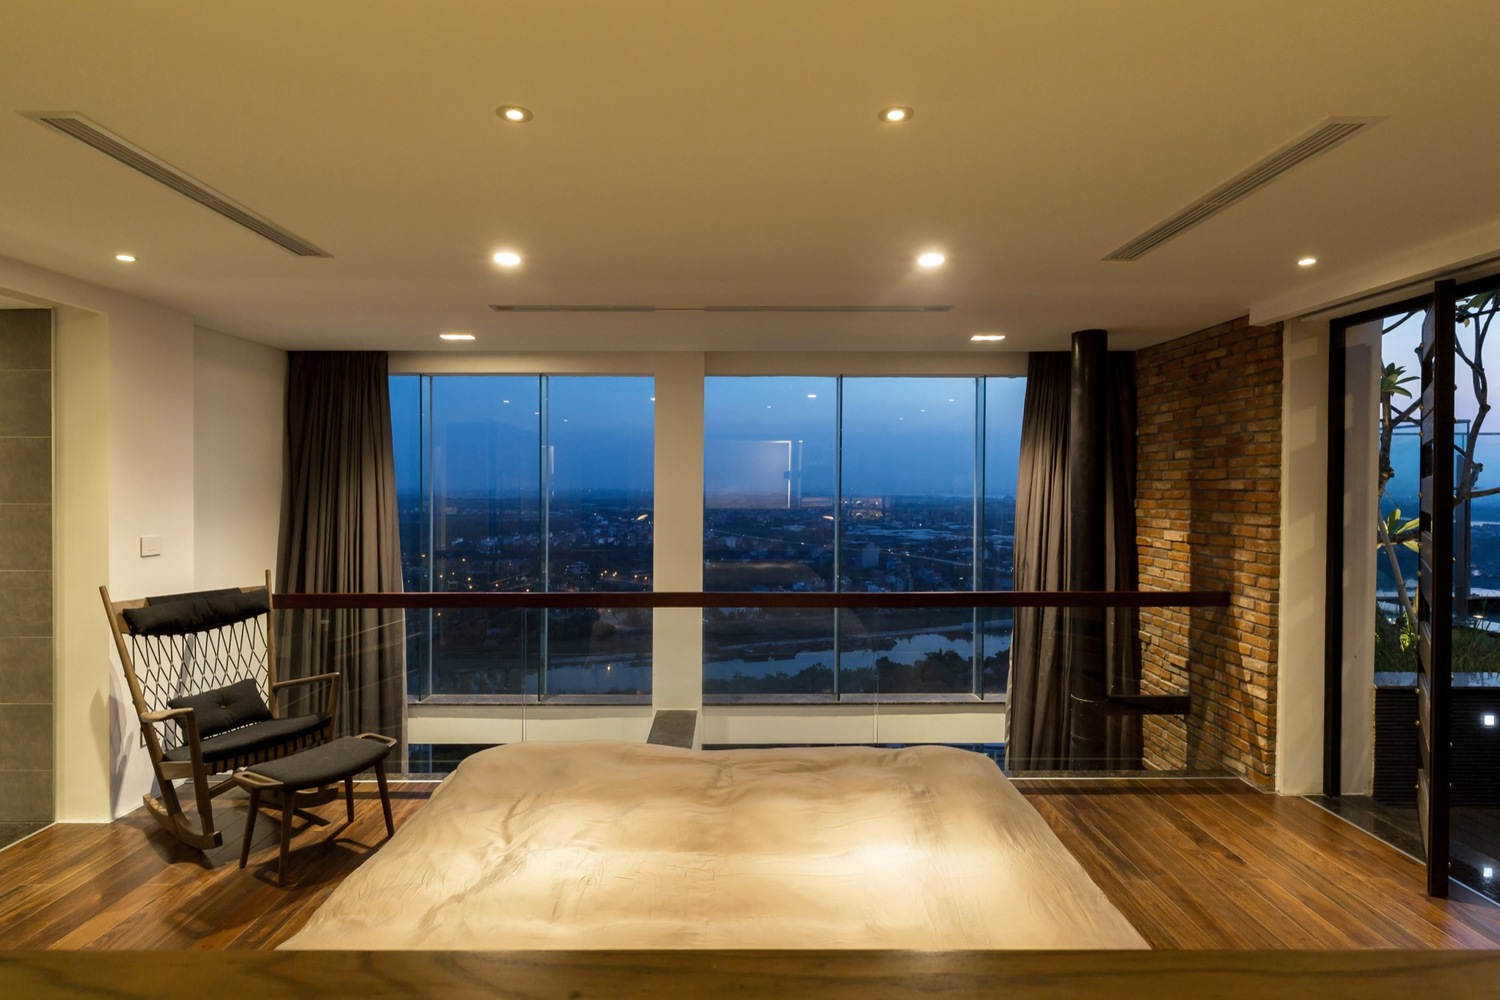 penthouseecopark_photos_19.jpg